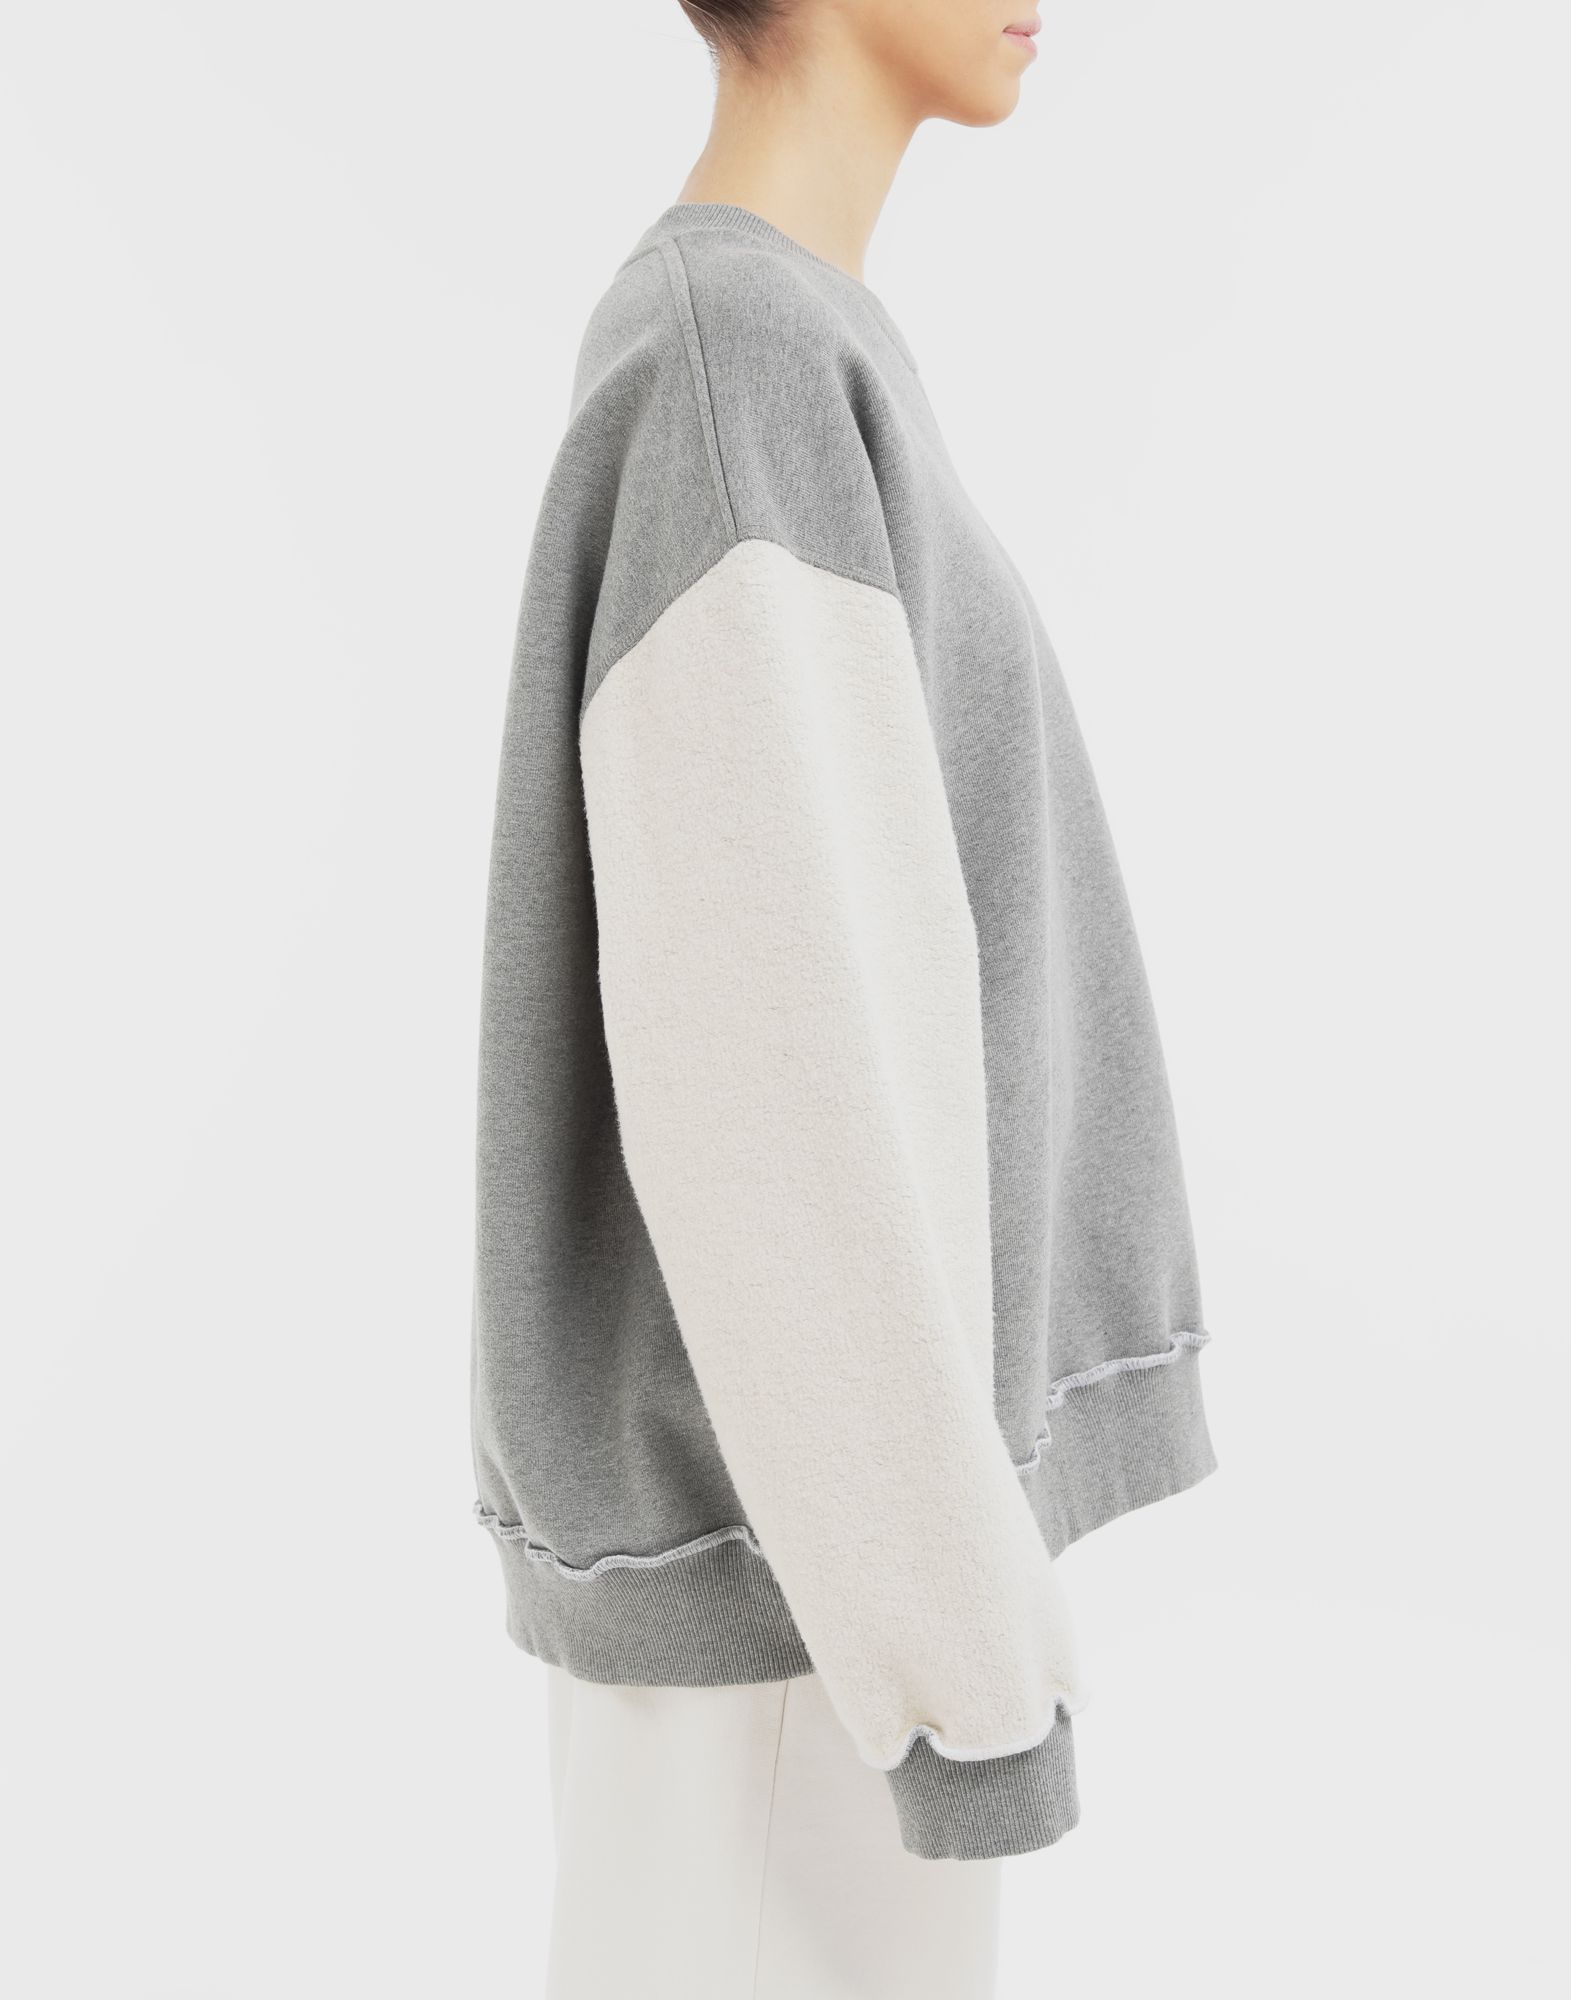 MM6 MAISON MARGIELA Contrast sleeves sweatshirt Sweatshirt Woman a